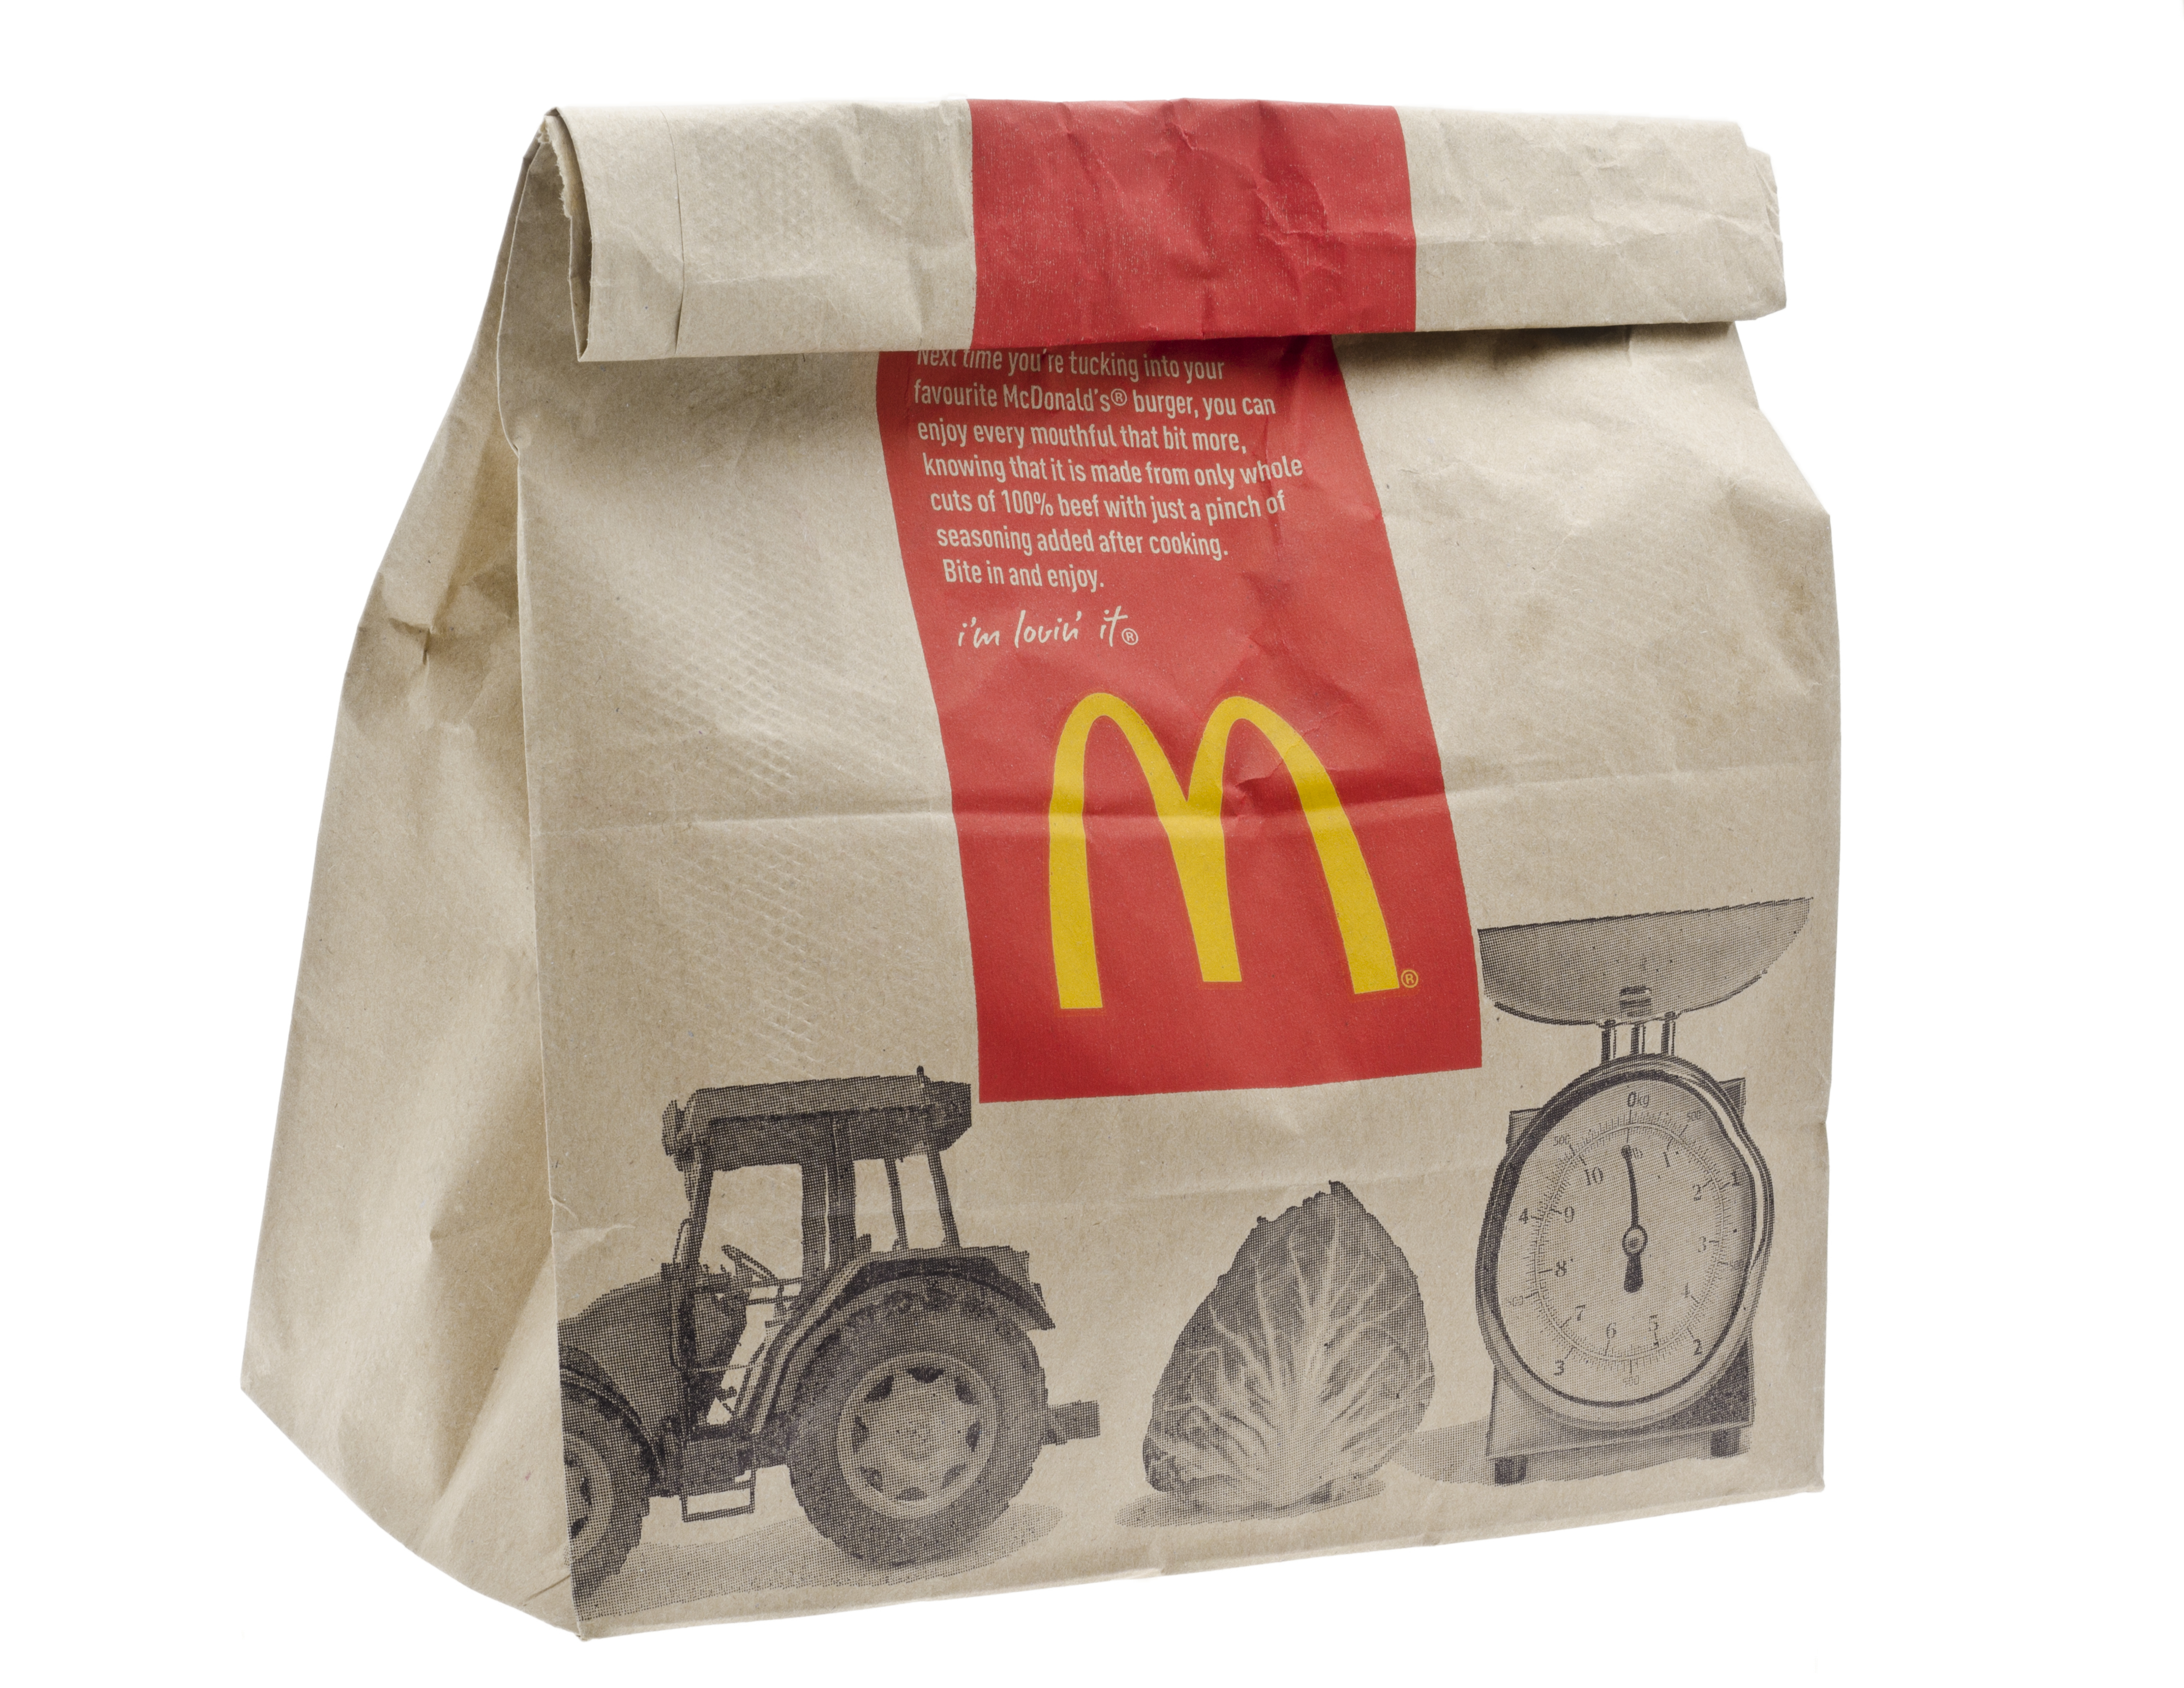 London, England - January 1, 2013: McDonald's Fast Food Meal in Brown Paper Bag